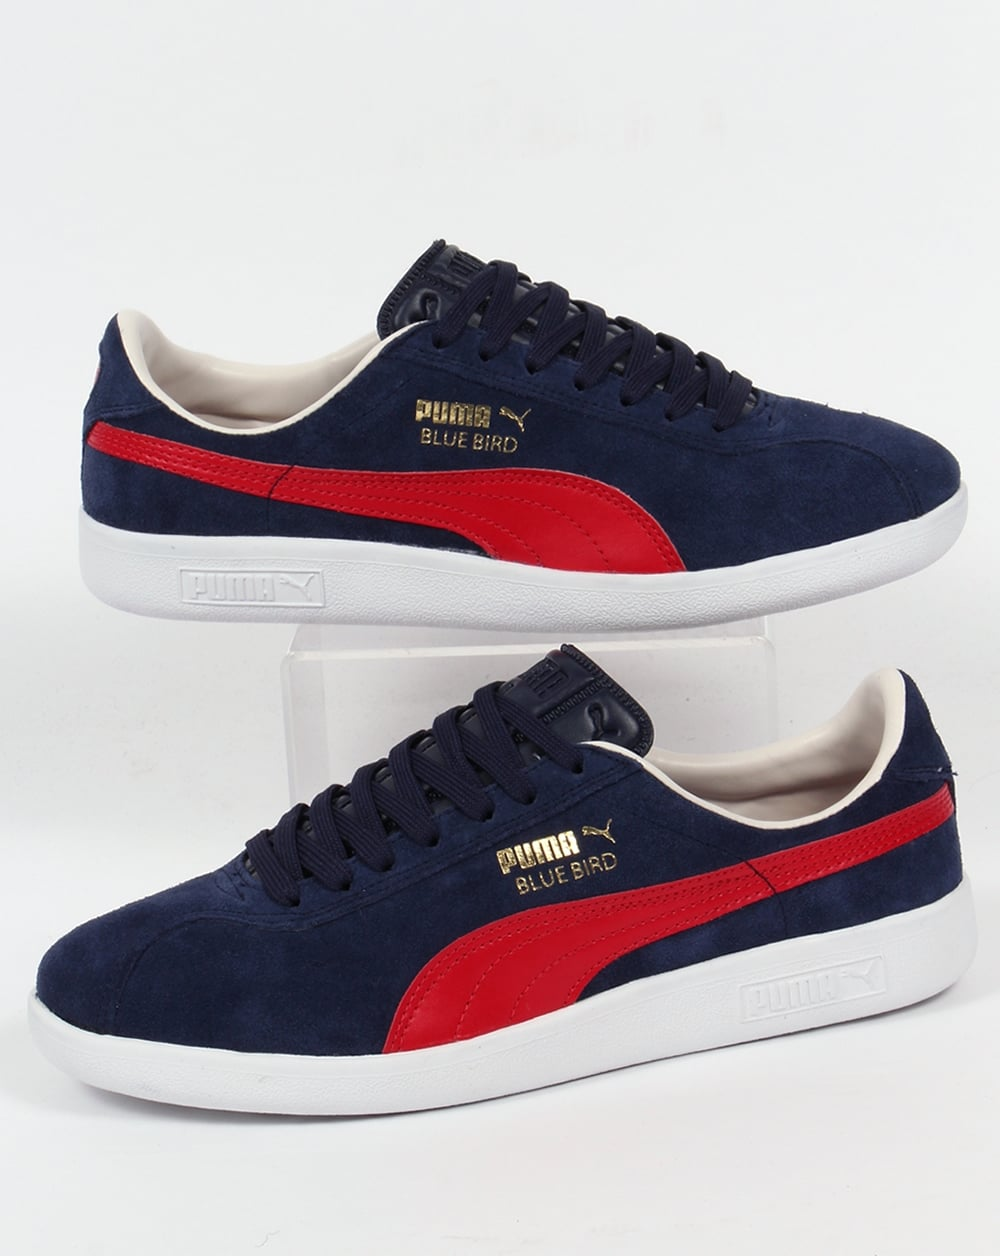 best loved 1f238 6835a Puma Bluebird Trainers Navy/Red